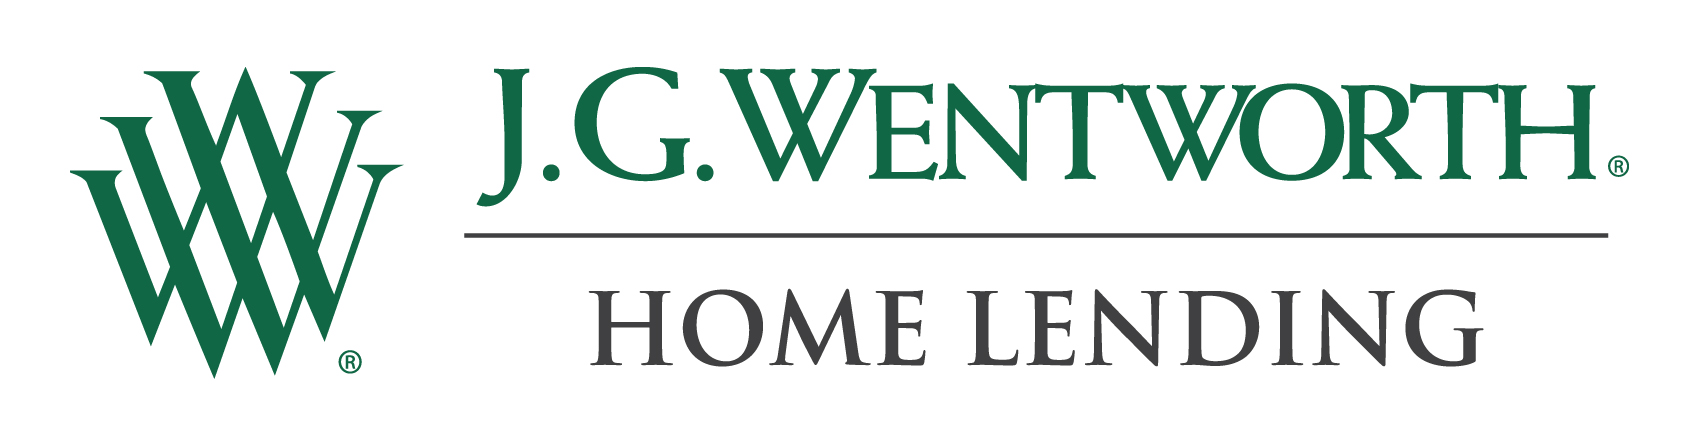 J.G. Wentworth Home Lending